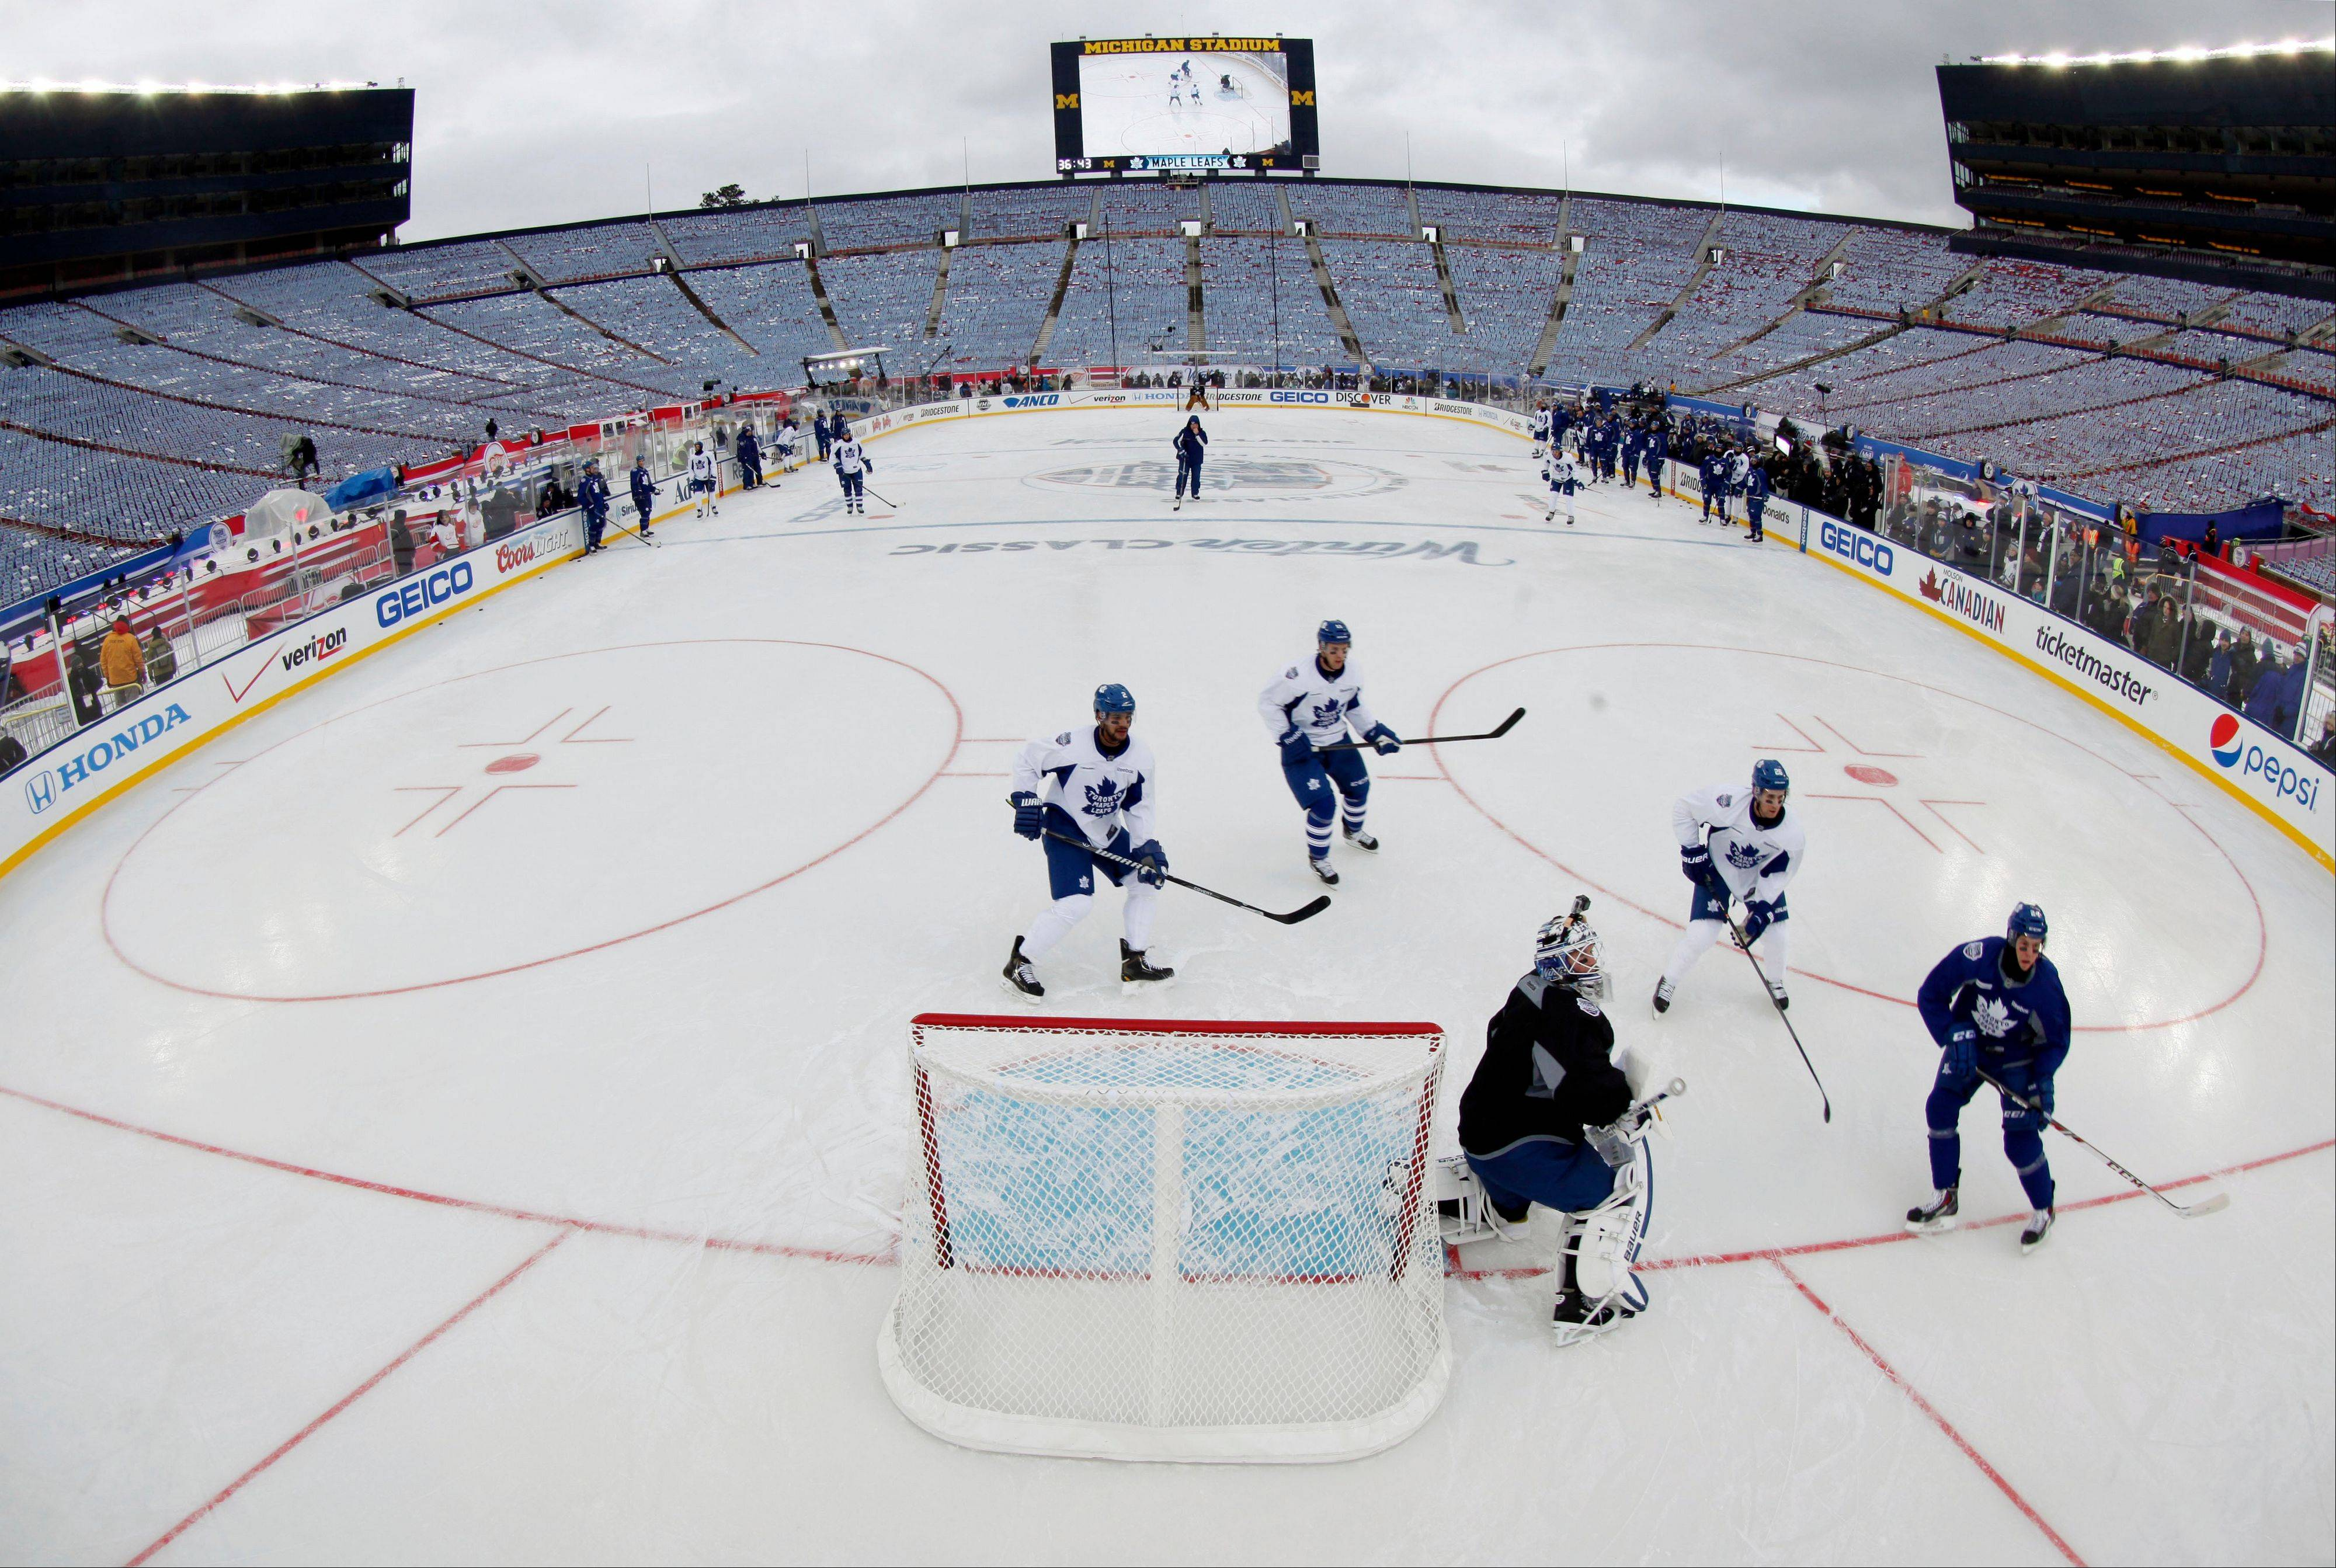 Toronto Maple Leafs players practice Tuesday on the outdoor rink for Wednesday�s Winter Classic against the Detroit Red Wings at Michigan Stadium in Ann Arbor.